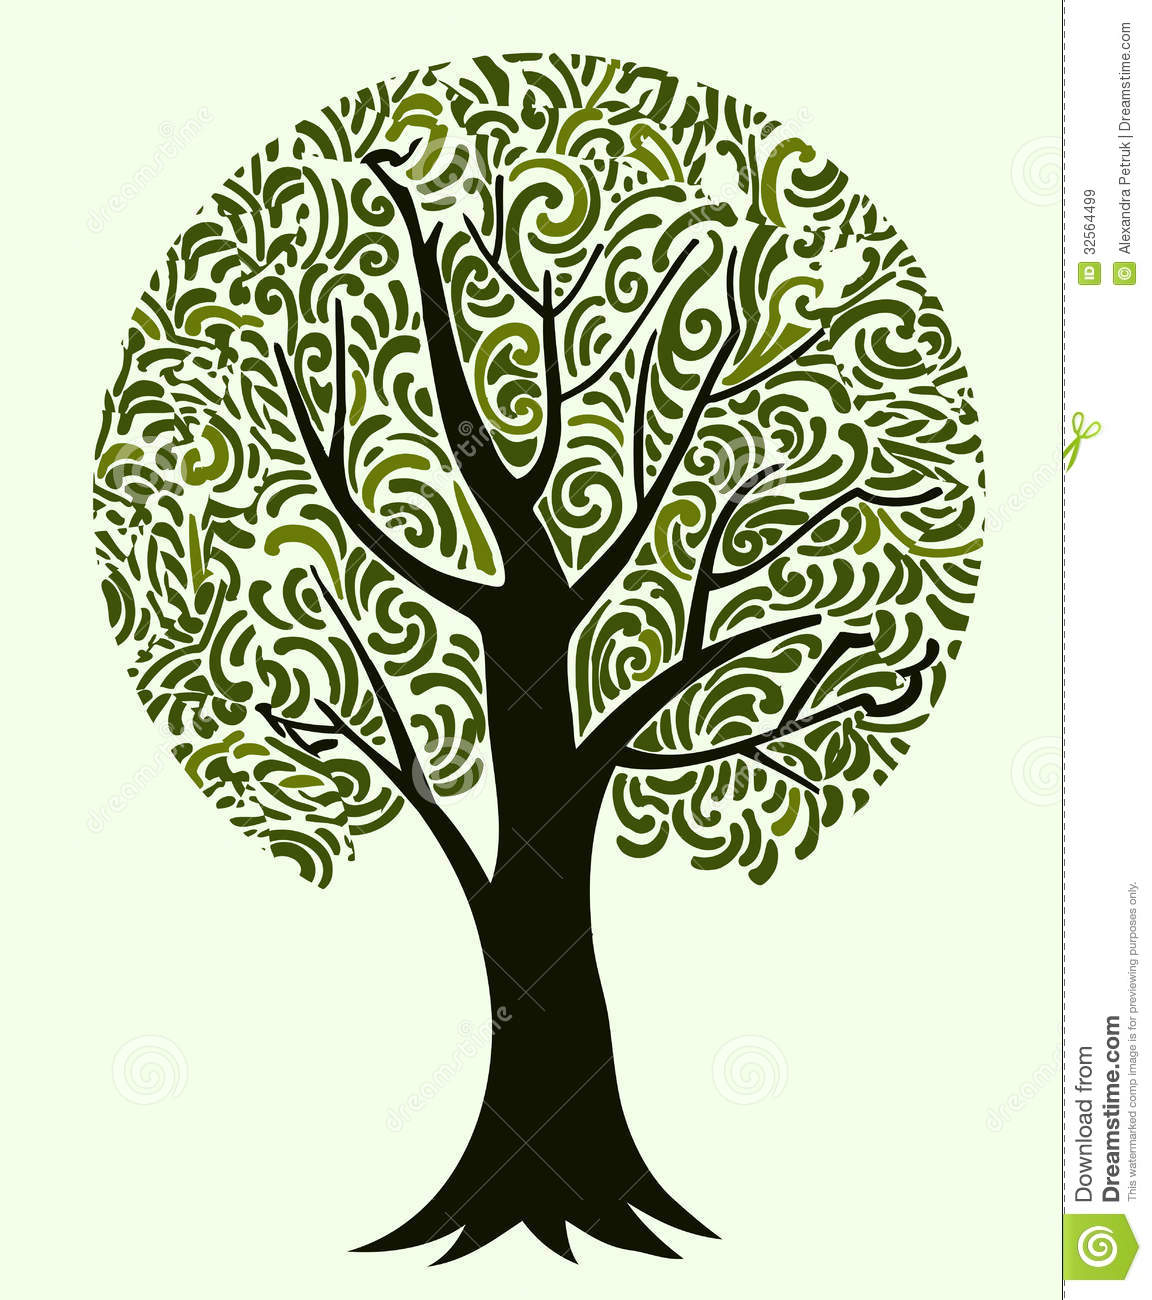 essay on trees natures gift to man Nature essay for class 1, 2, 3, 4, 5, 6, 7, 8, 9 and 10 find paragraph, long and short essay on nature for your kids, children and students gift given by the.